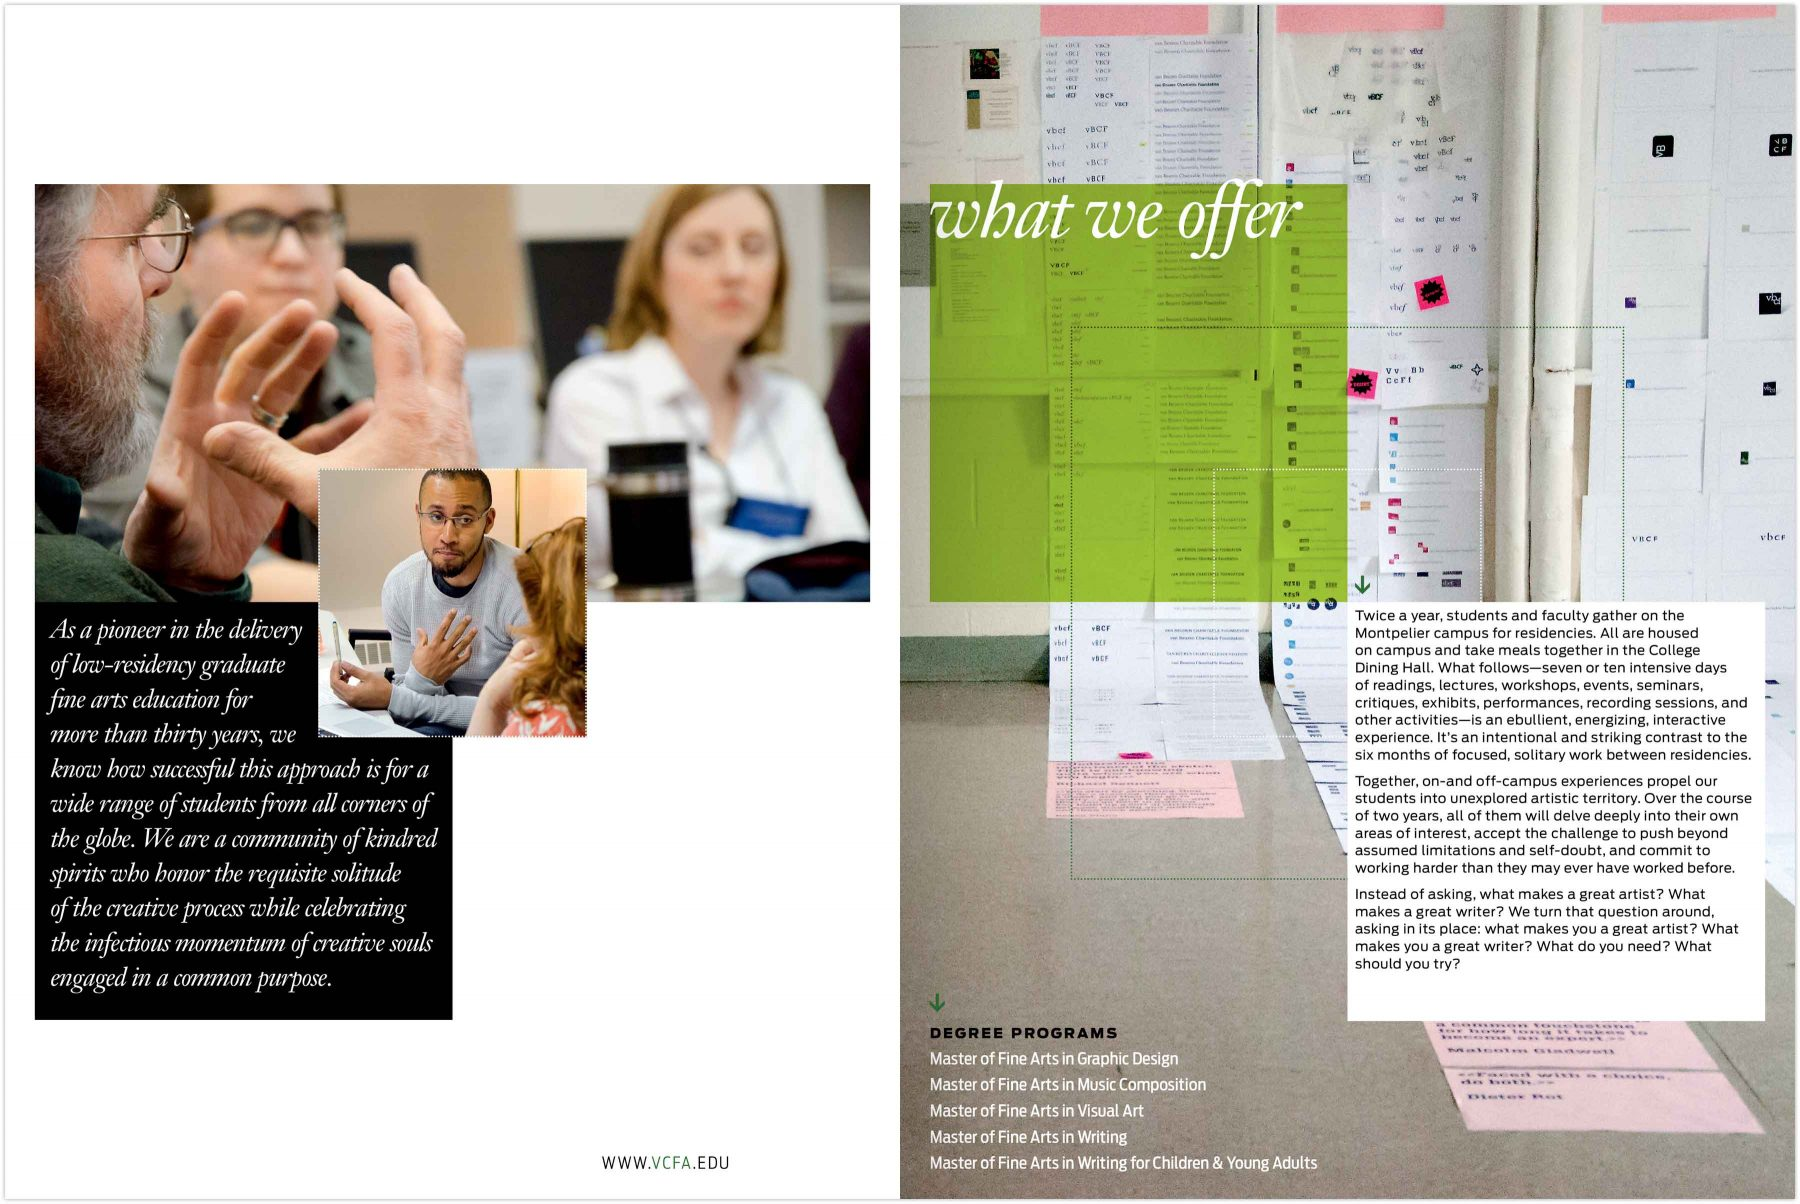 Viewbook spread: What we offer